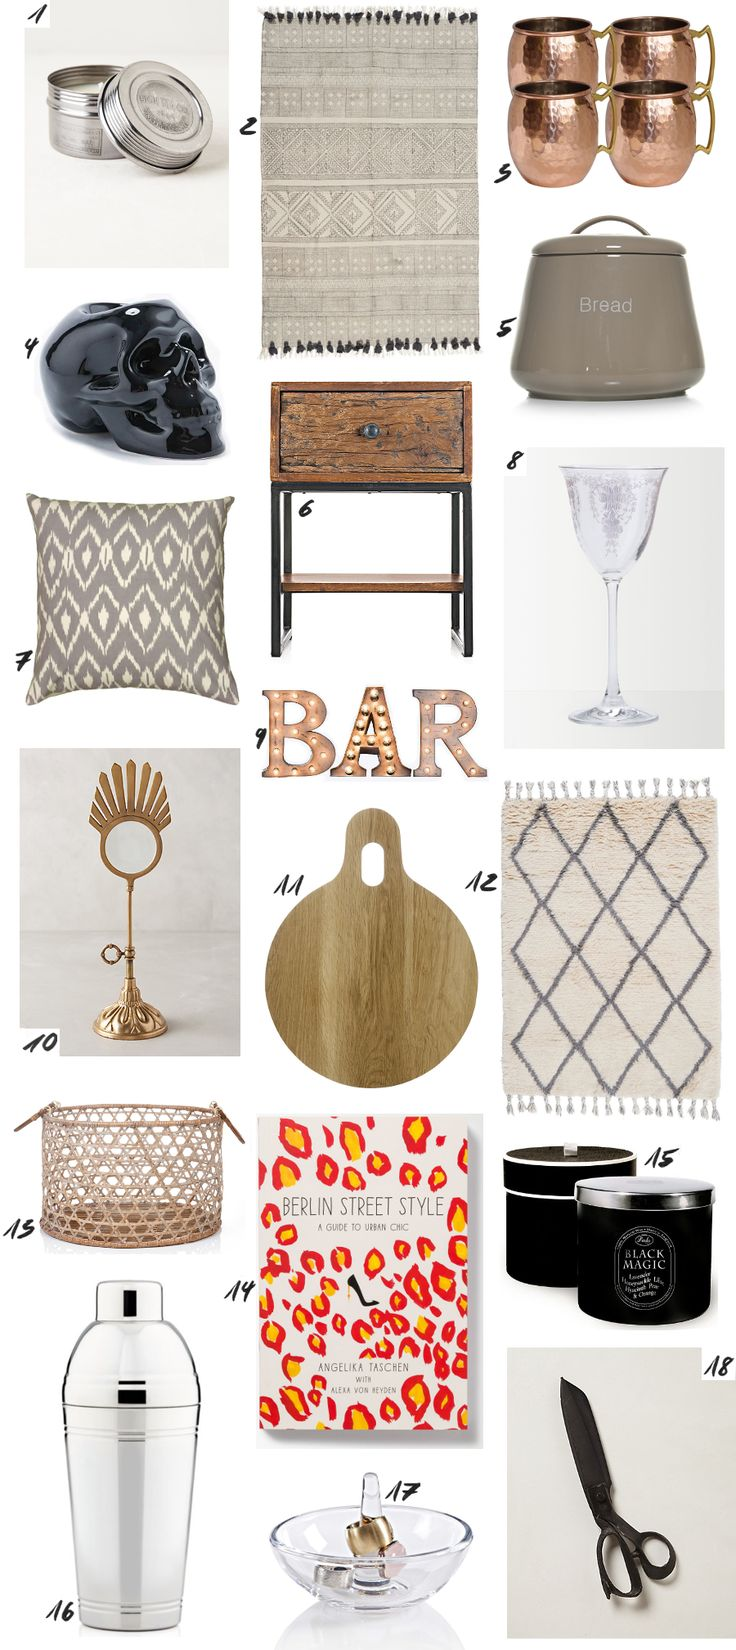 Winter Sale Home Decor Picks | Featuring Moscow Mule Copper Mugs, Skull Candle Holder | Silver Cocktail Shaker. More on www.thedashingrider.com